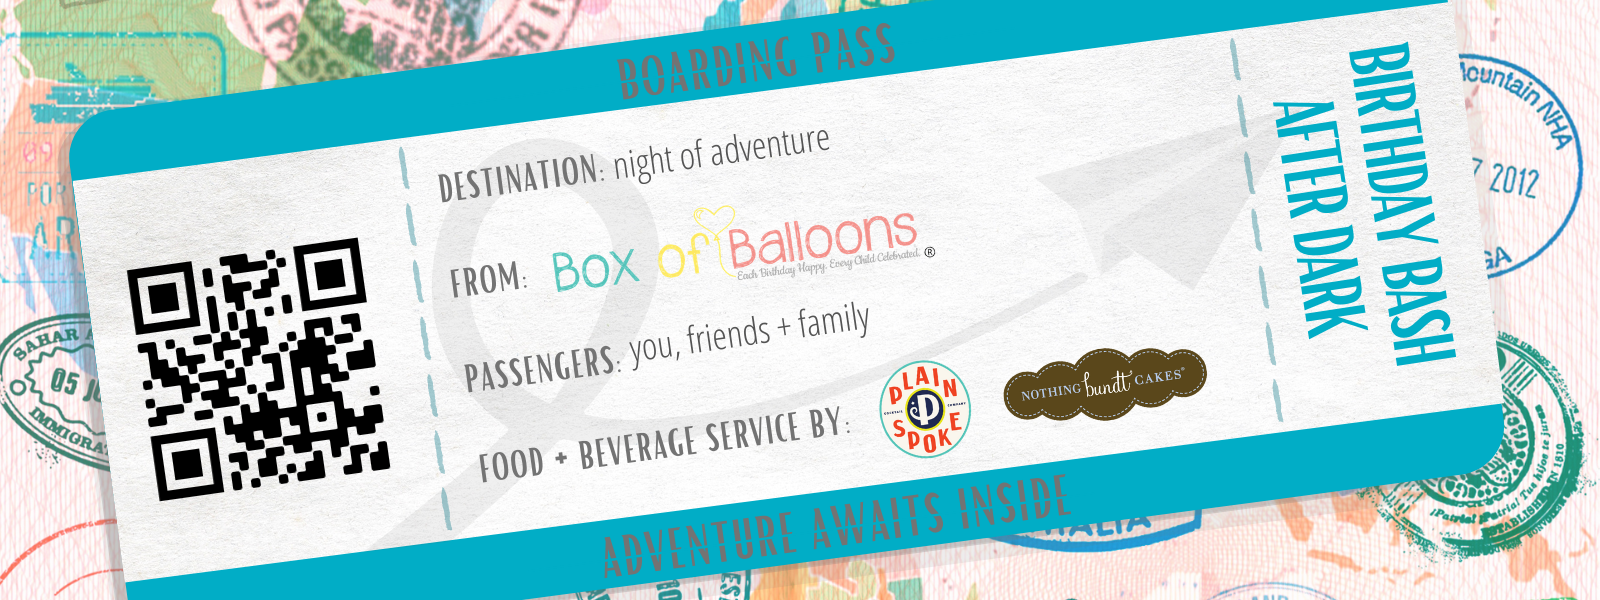 Box of Balloons Birthday Bash After Dark- Party Kit! image